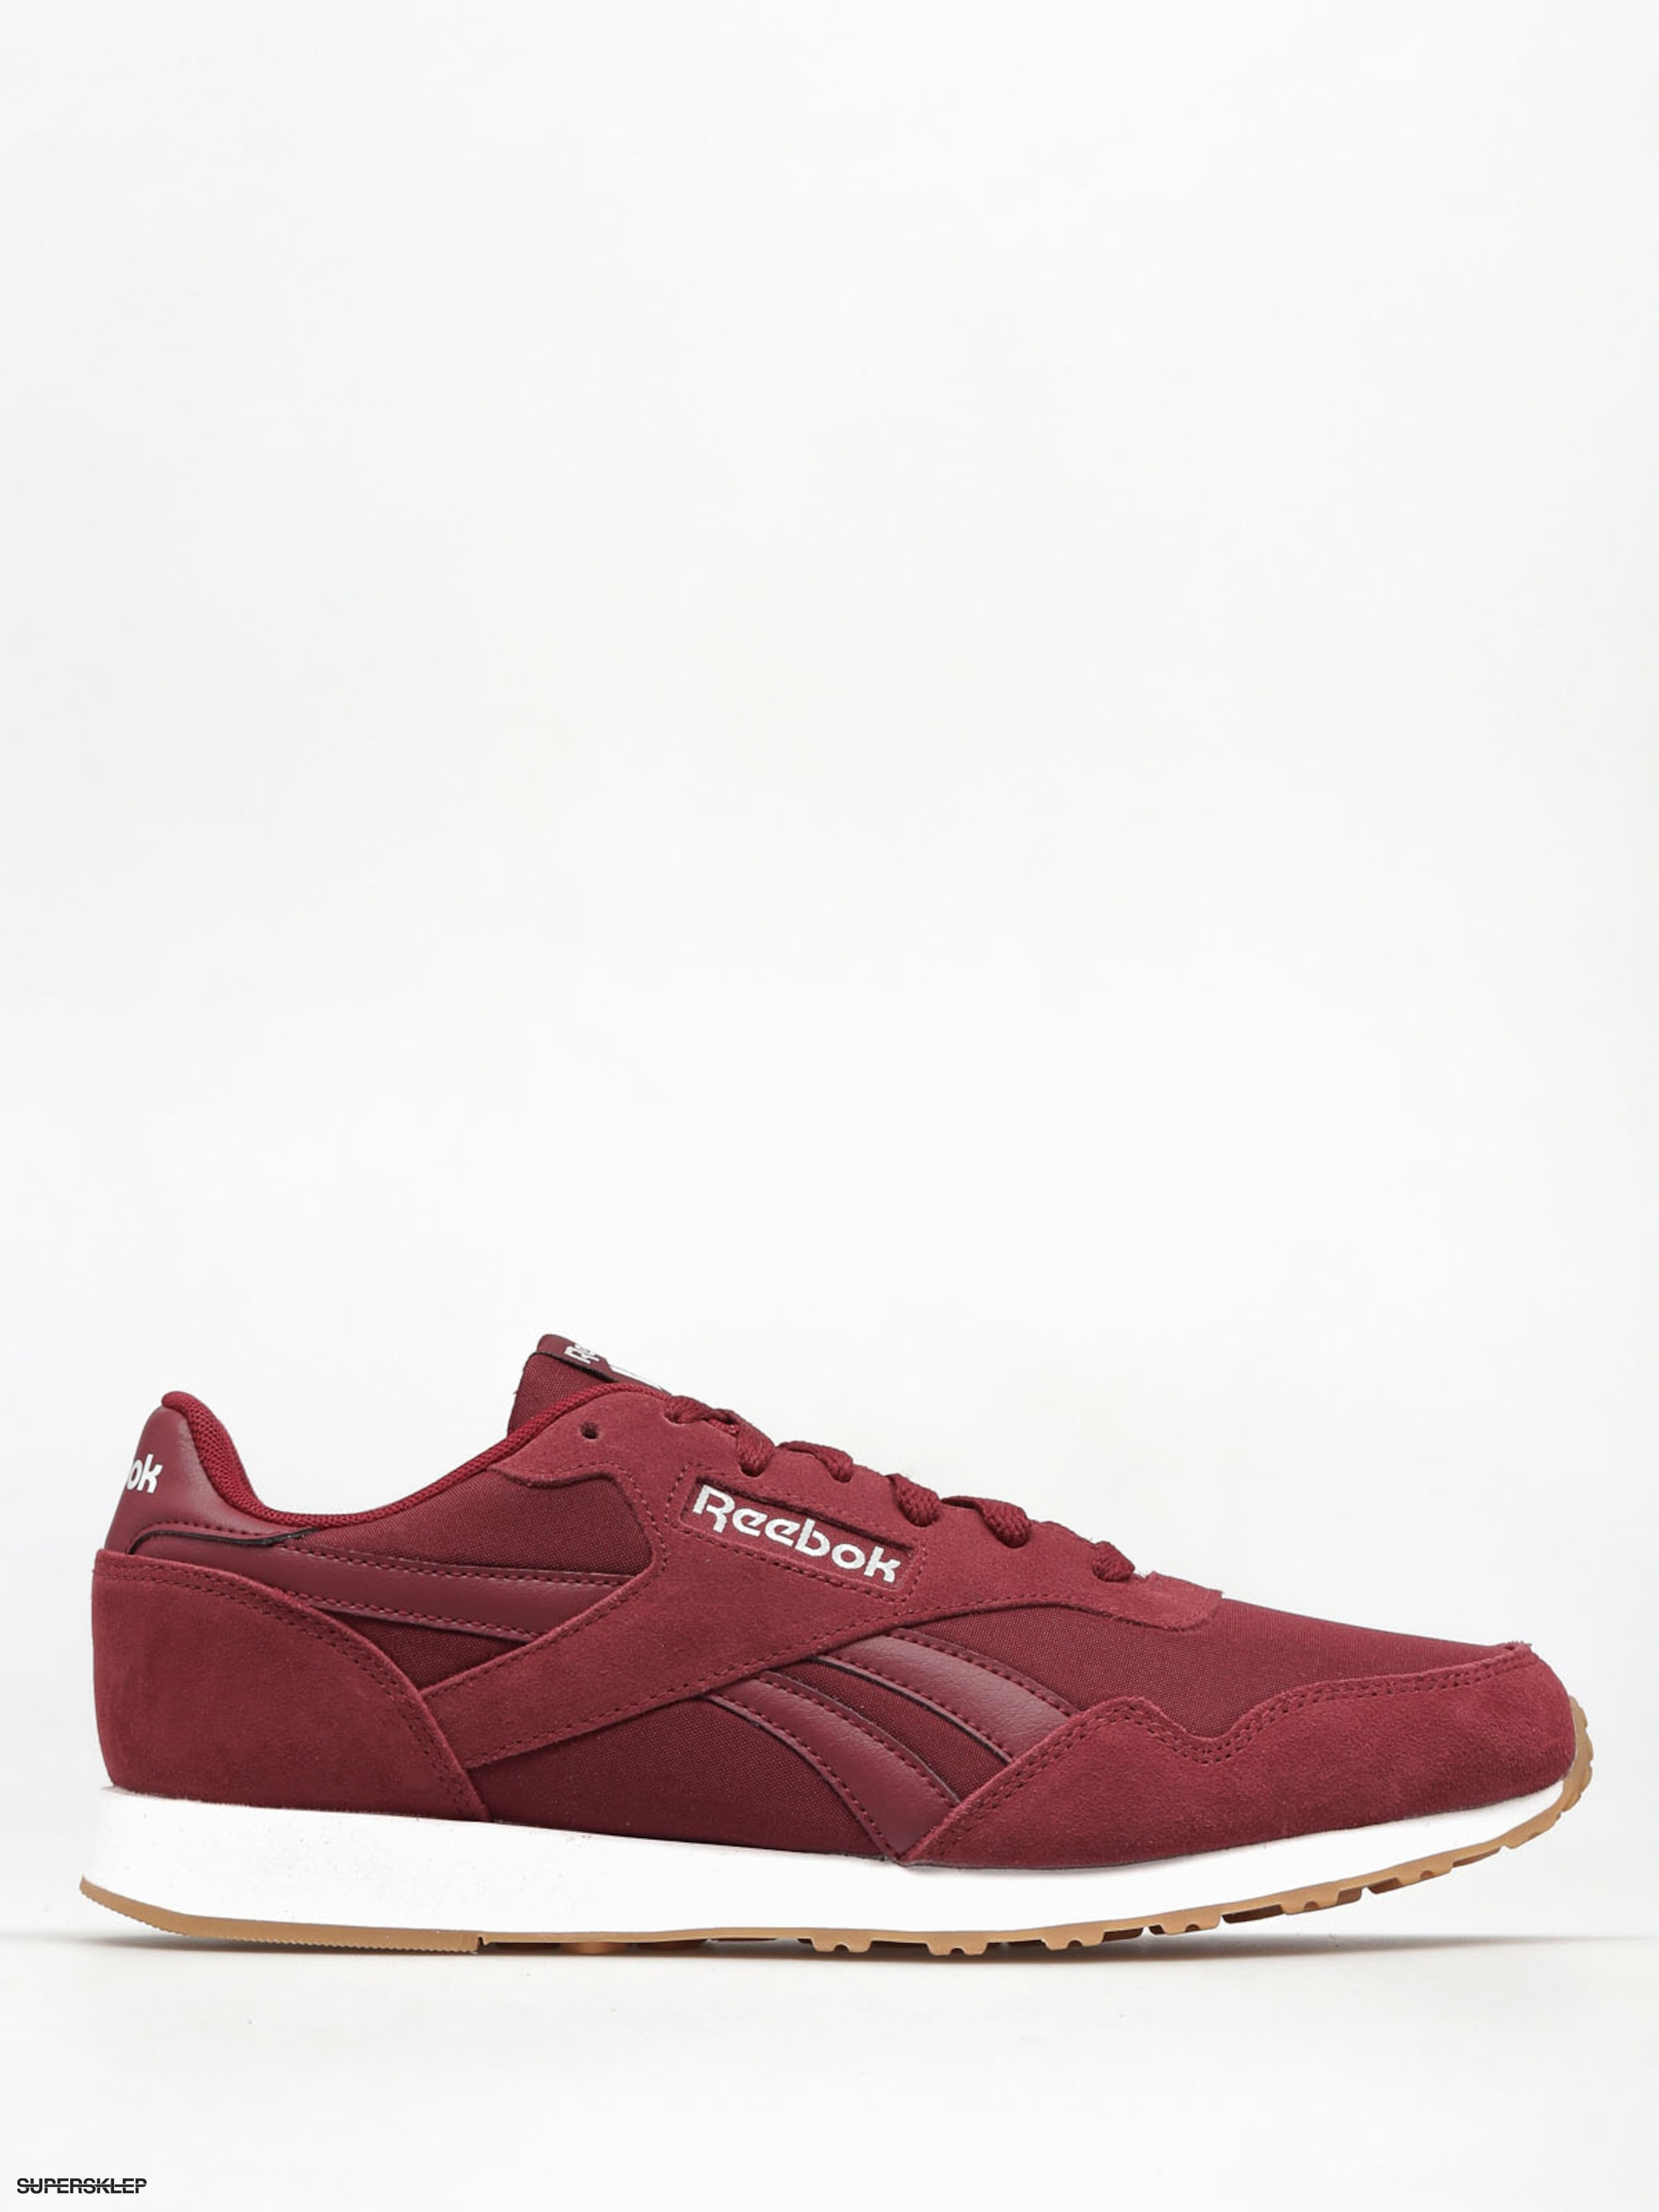 Reebok Boty Royal Ultra (od coli burgundy/white/gum)